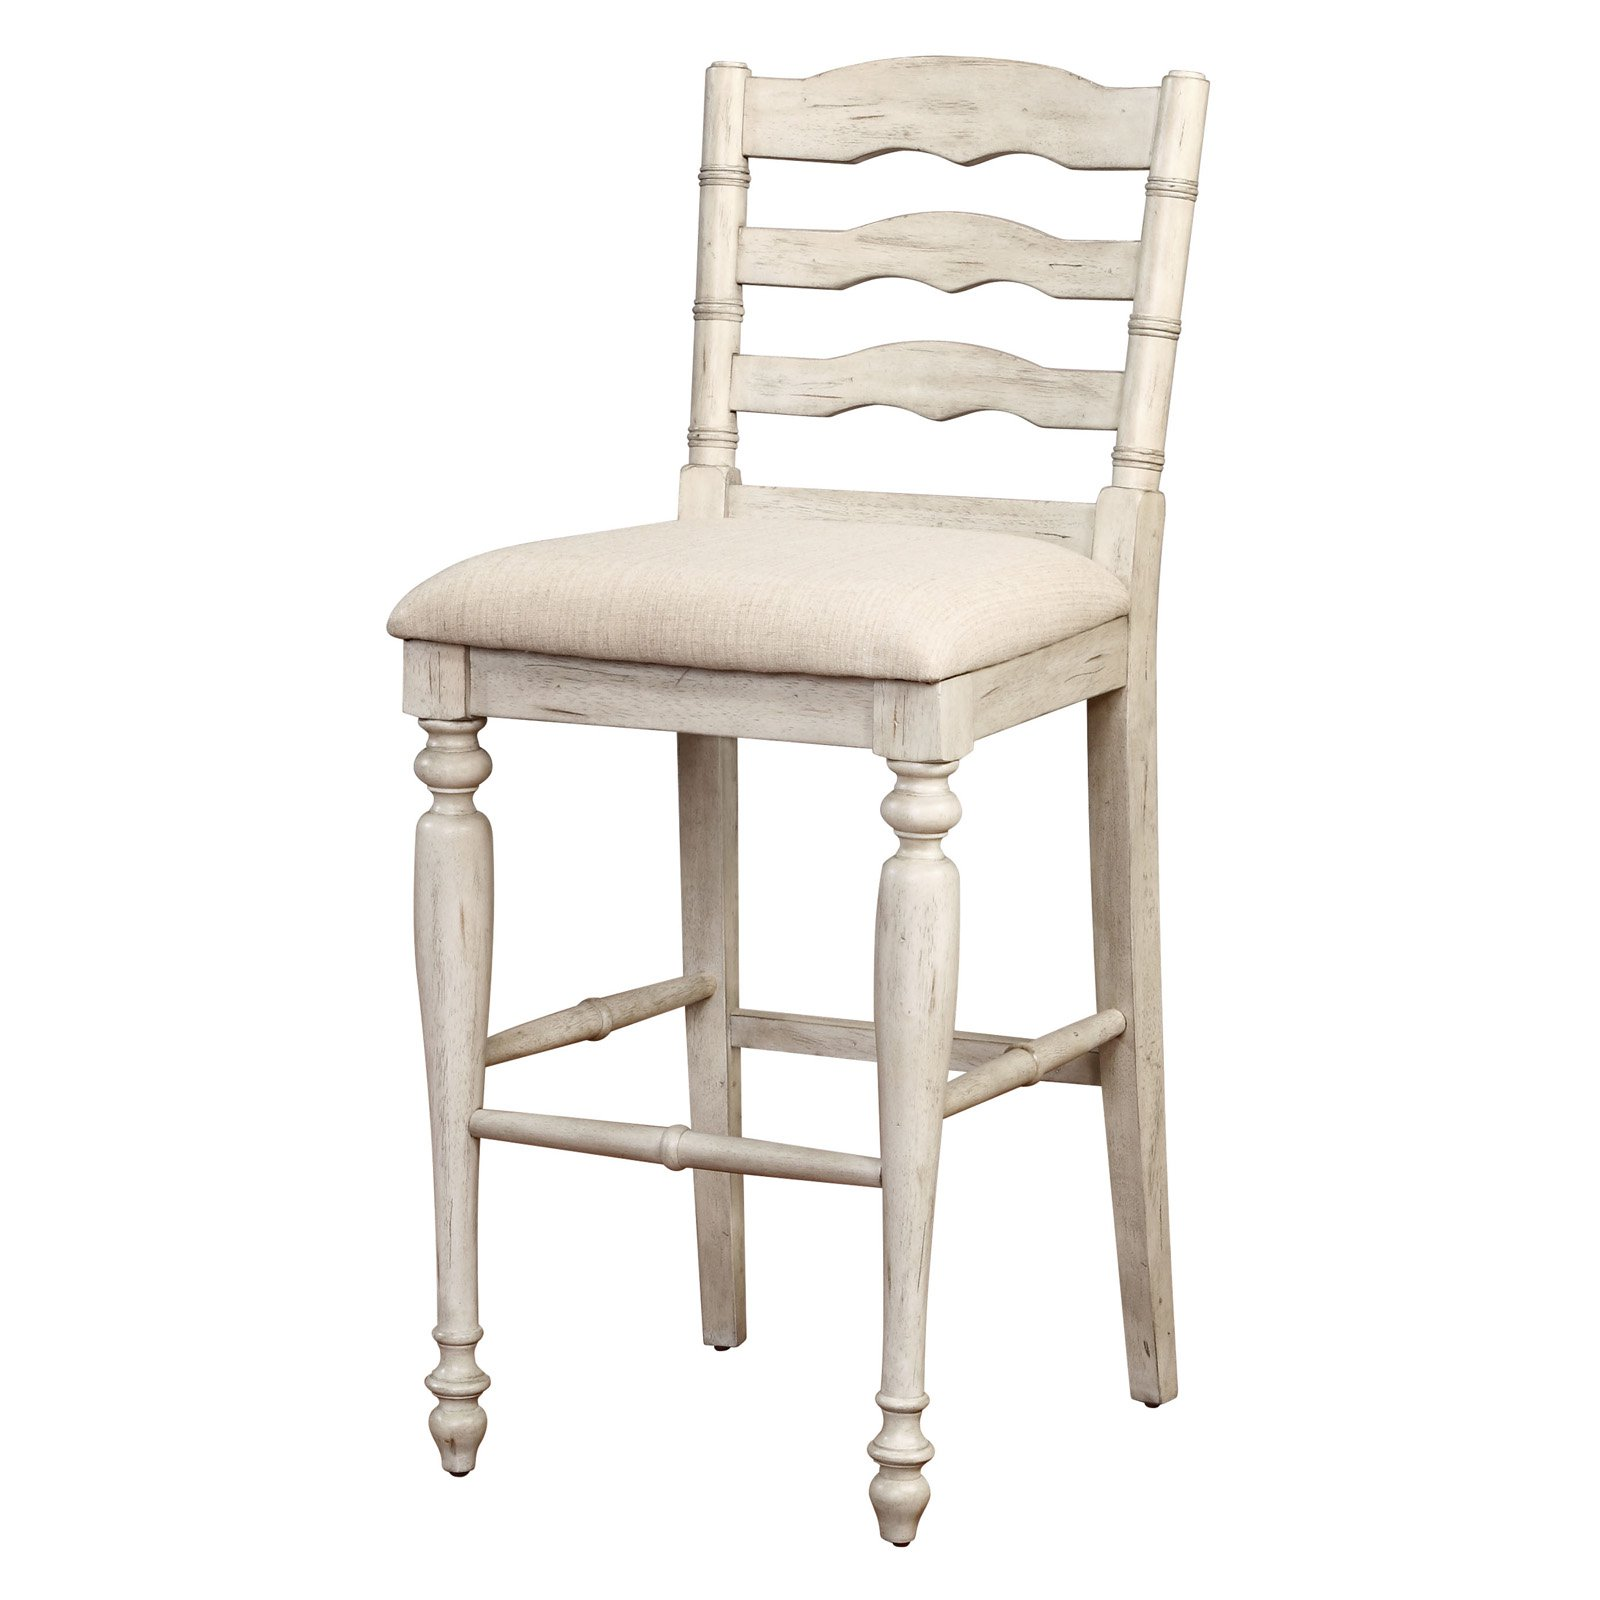 Linon Marino Bar Stool, White Wash, 30 inch Seat Height